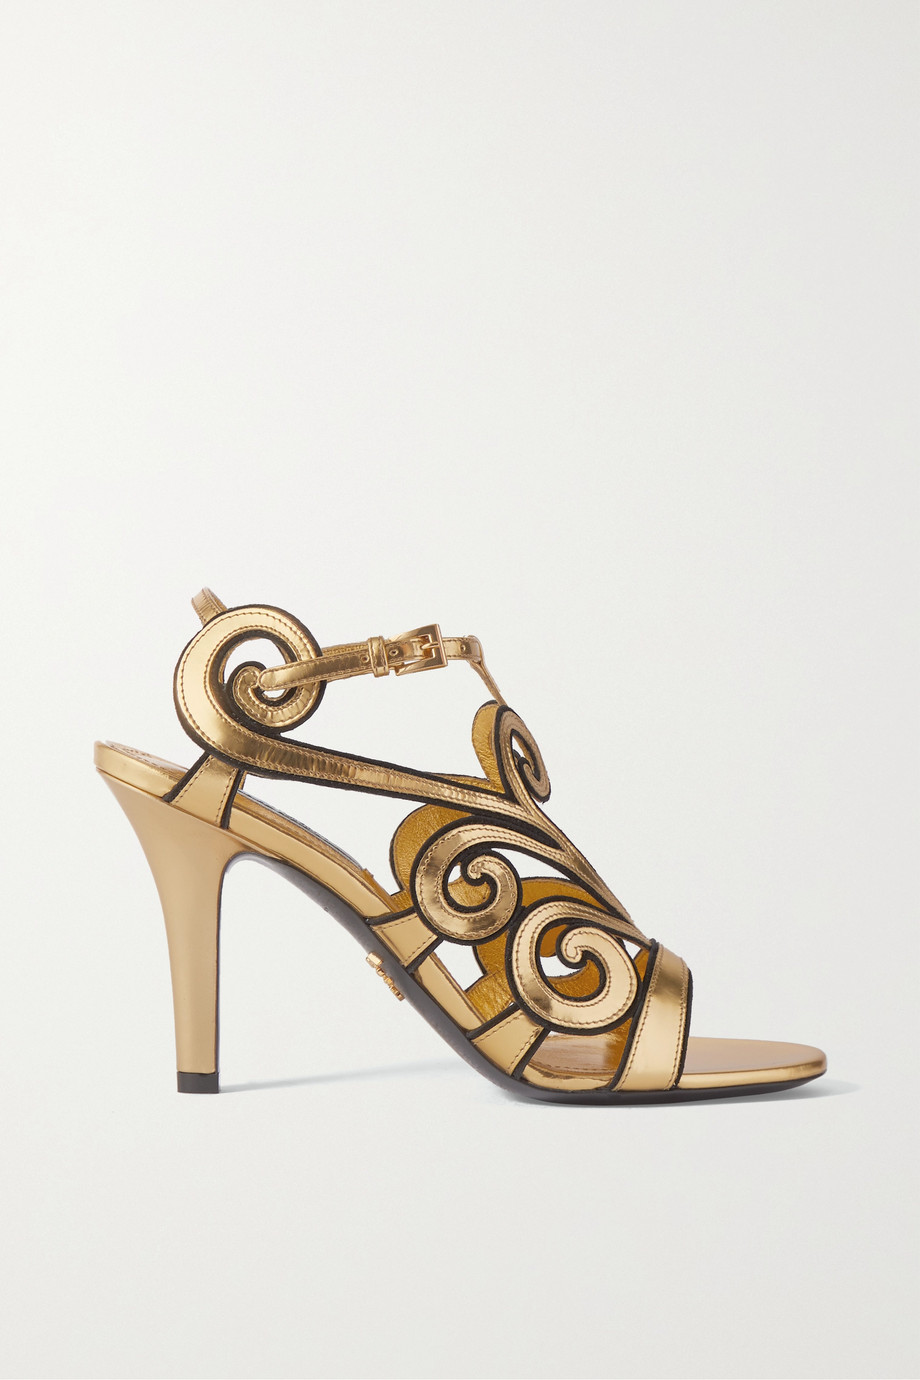 Prada Metallic leather and suede sandals